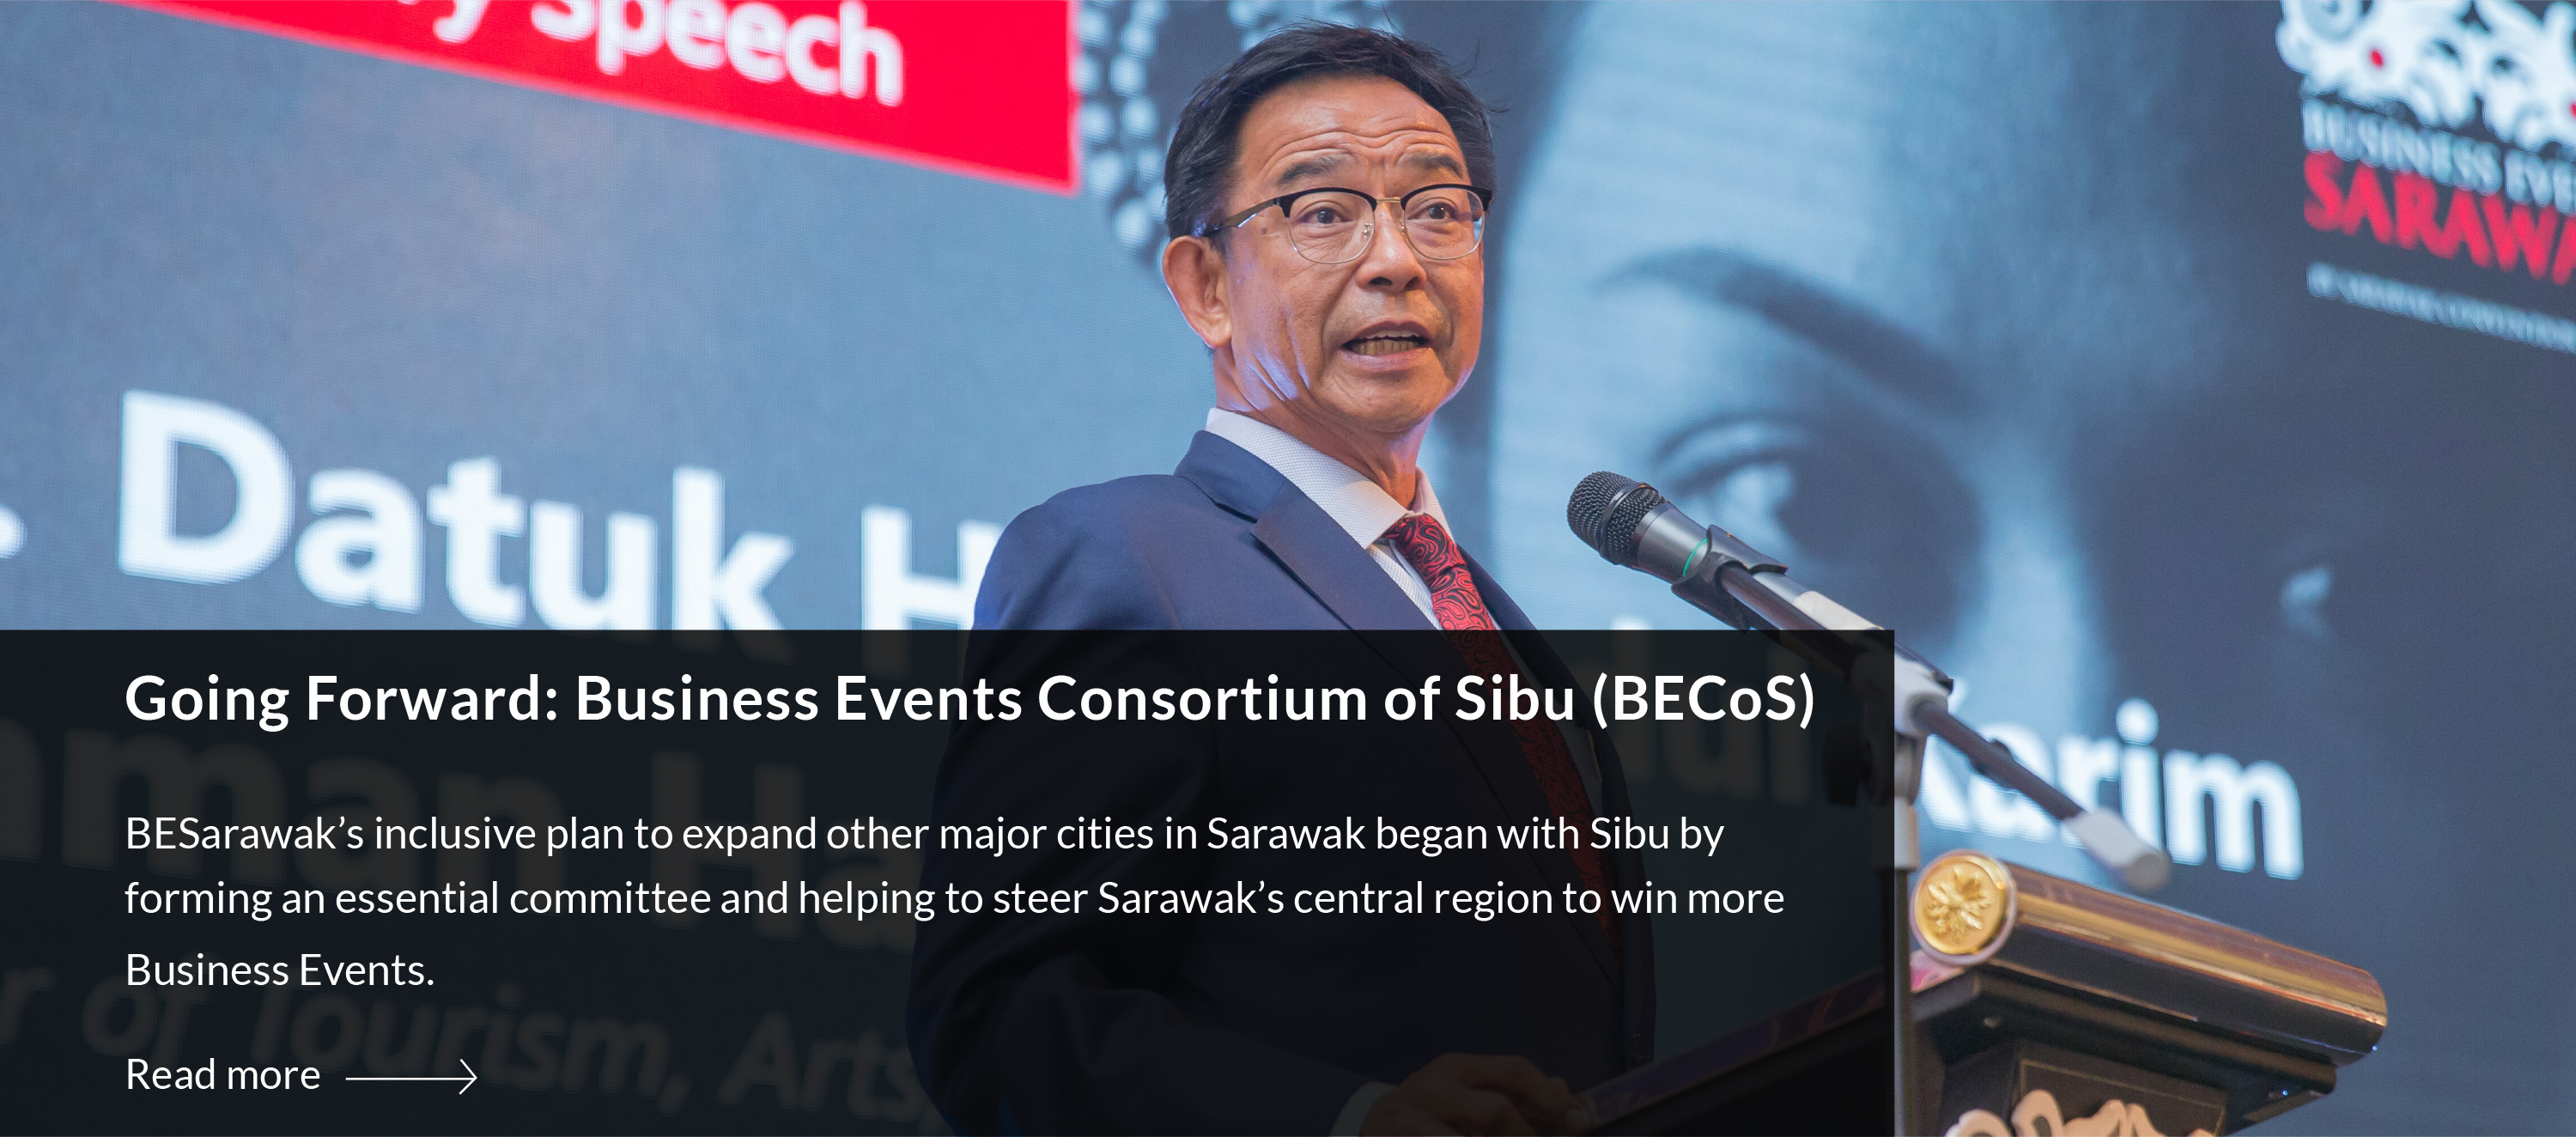 Going Forward: Business Events Consortium of Sibu (BECoS)